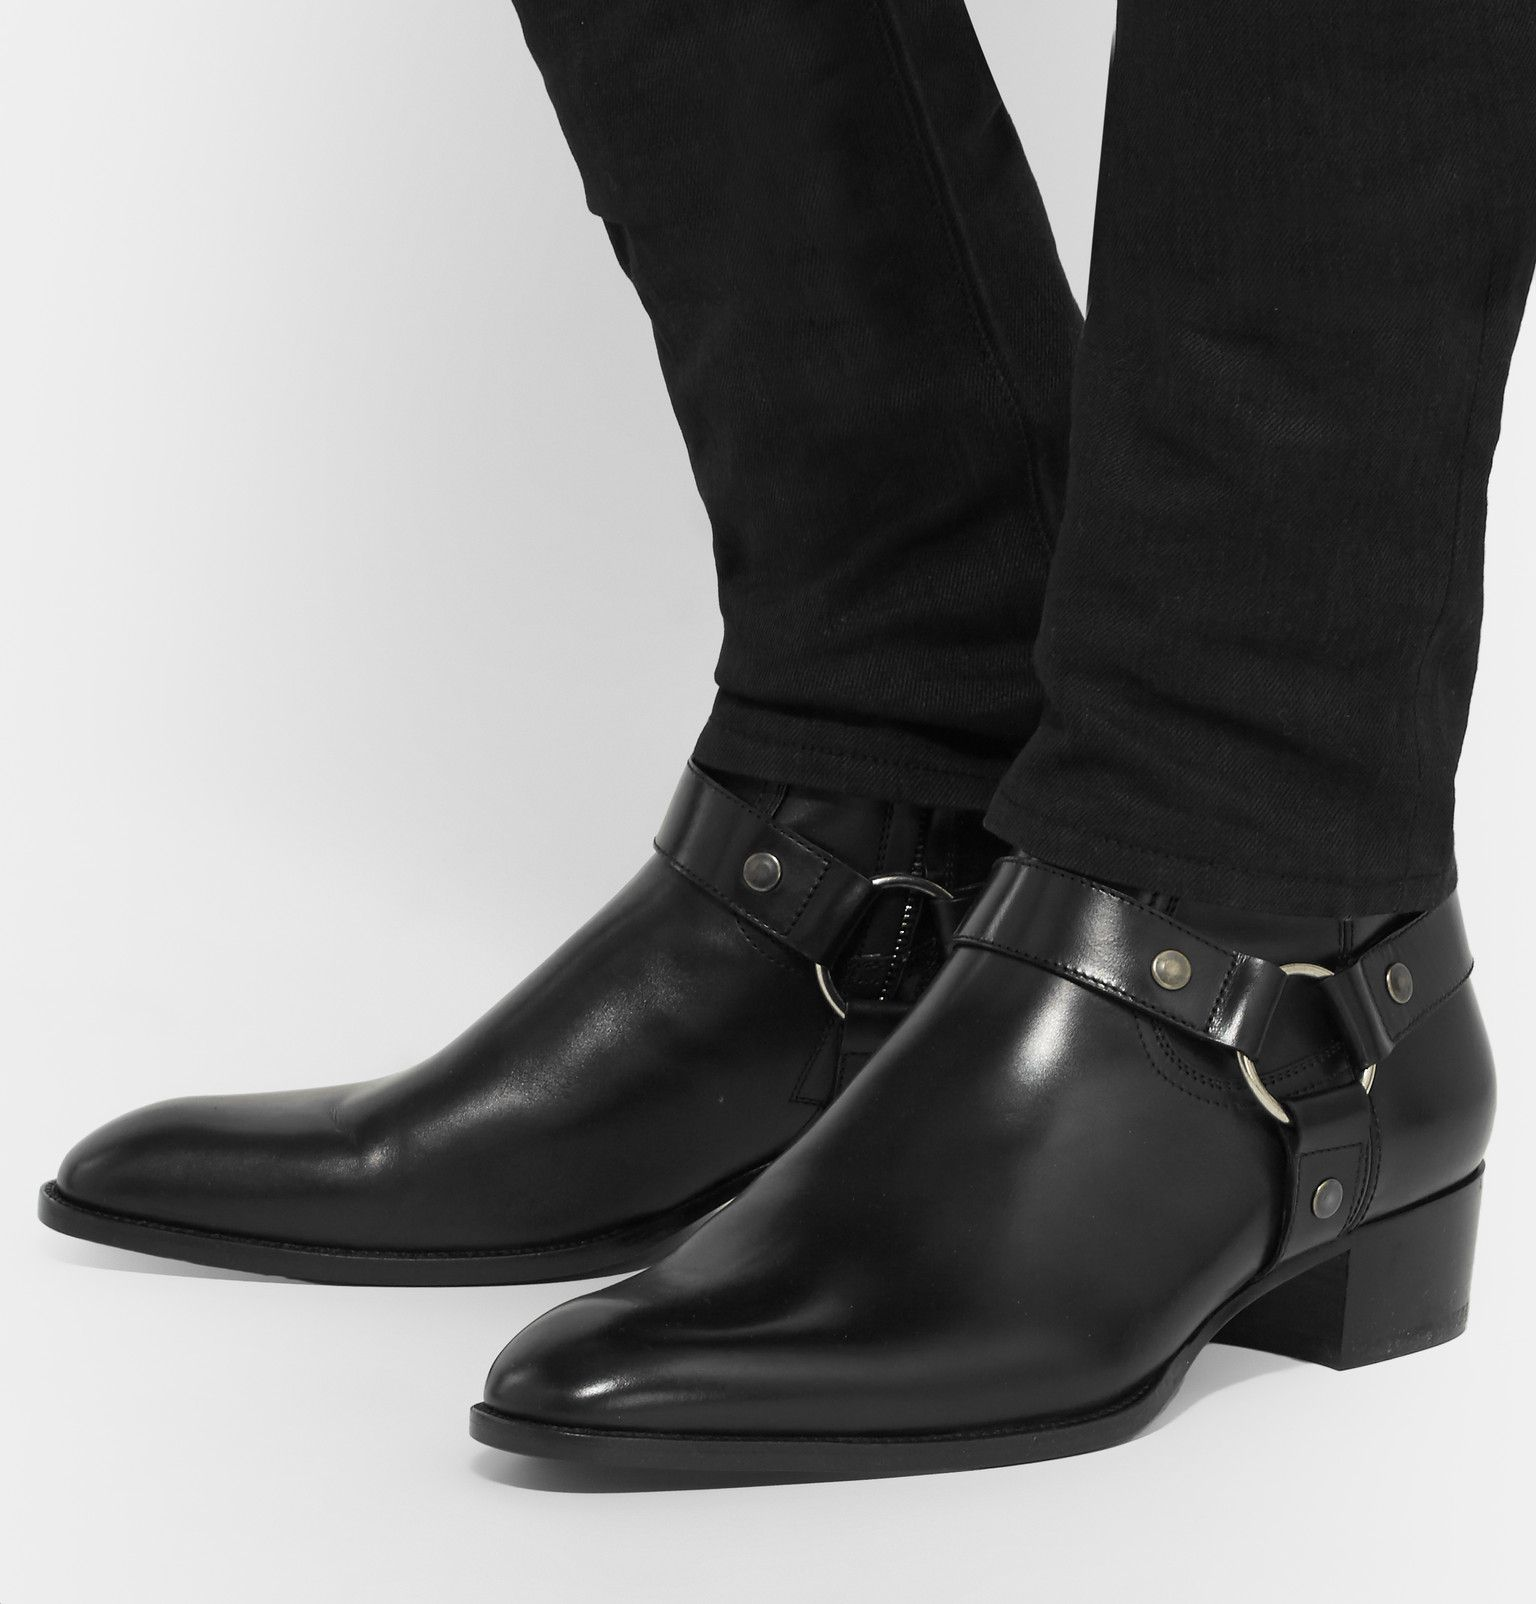 327917fe65 Saint Laurent - Leather Harness Boots - Preacher Styles Botas, Zapatos,  Consejos De Moda